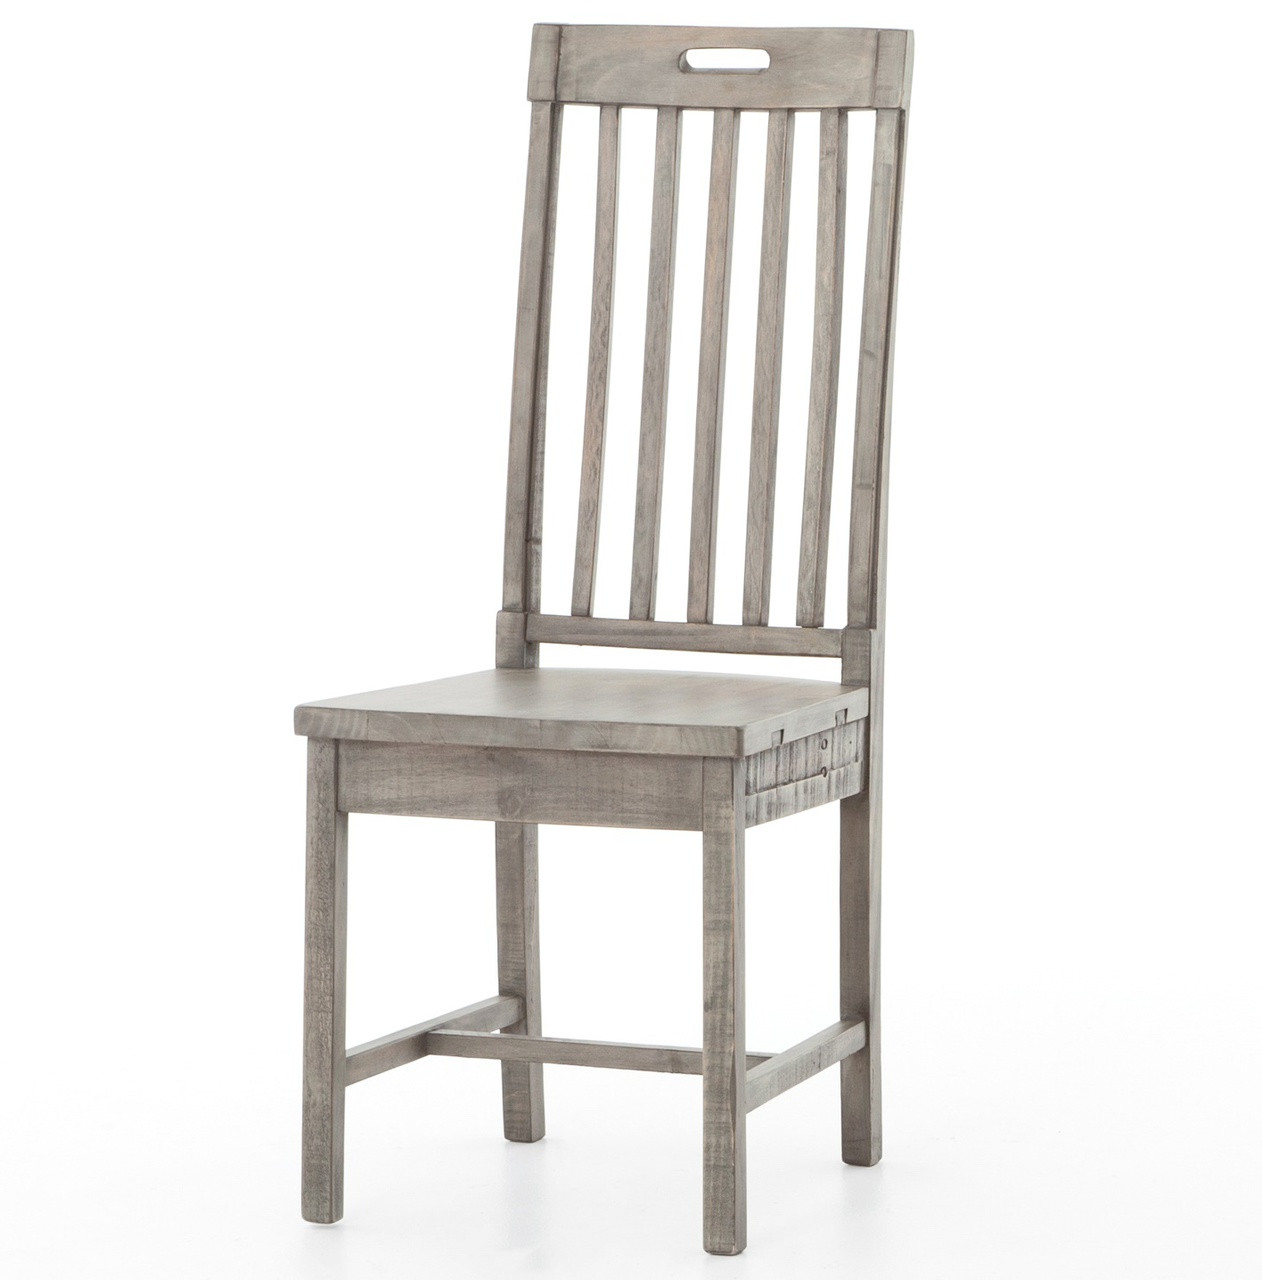 Cintra Rustic Reclaimed Wood Dining Room Chair  Gray